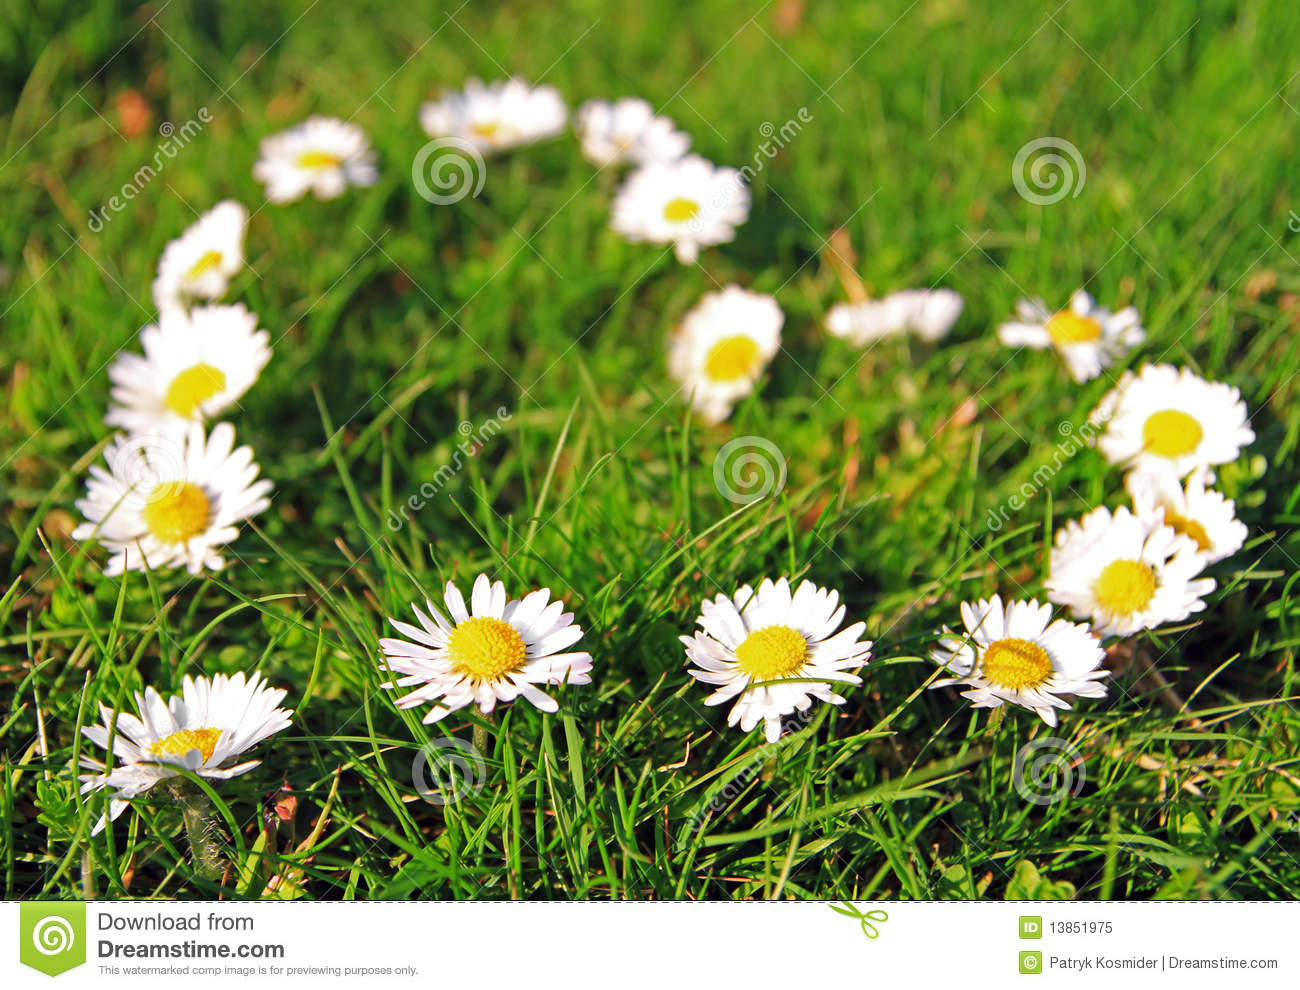 http://thumbs.dreamstime.com/z/daisy-heart-shape-13851975.jpg